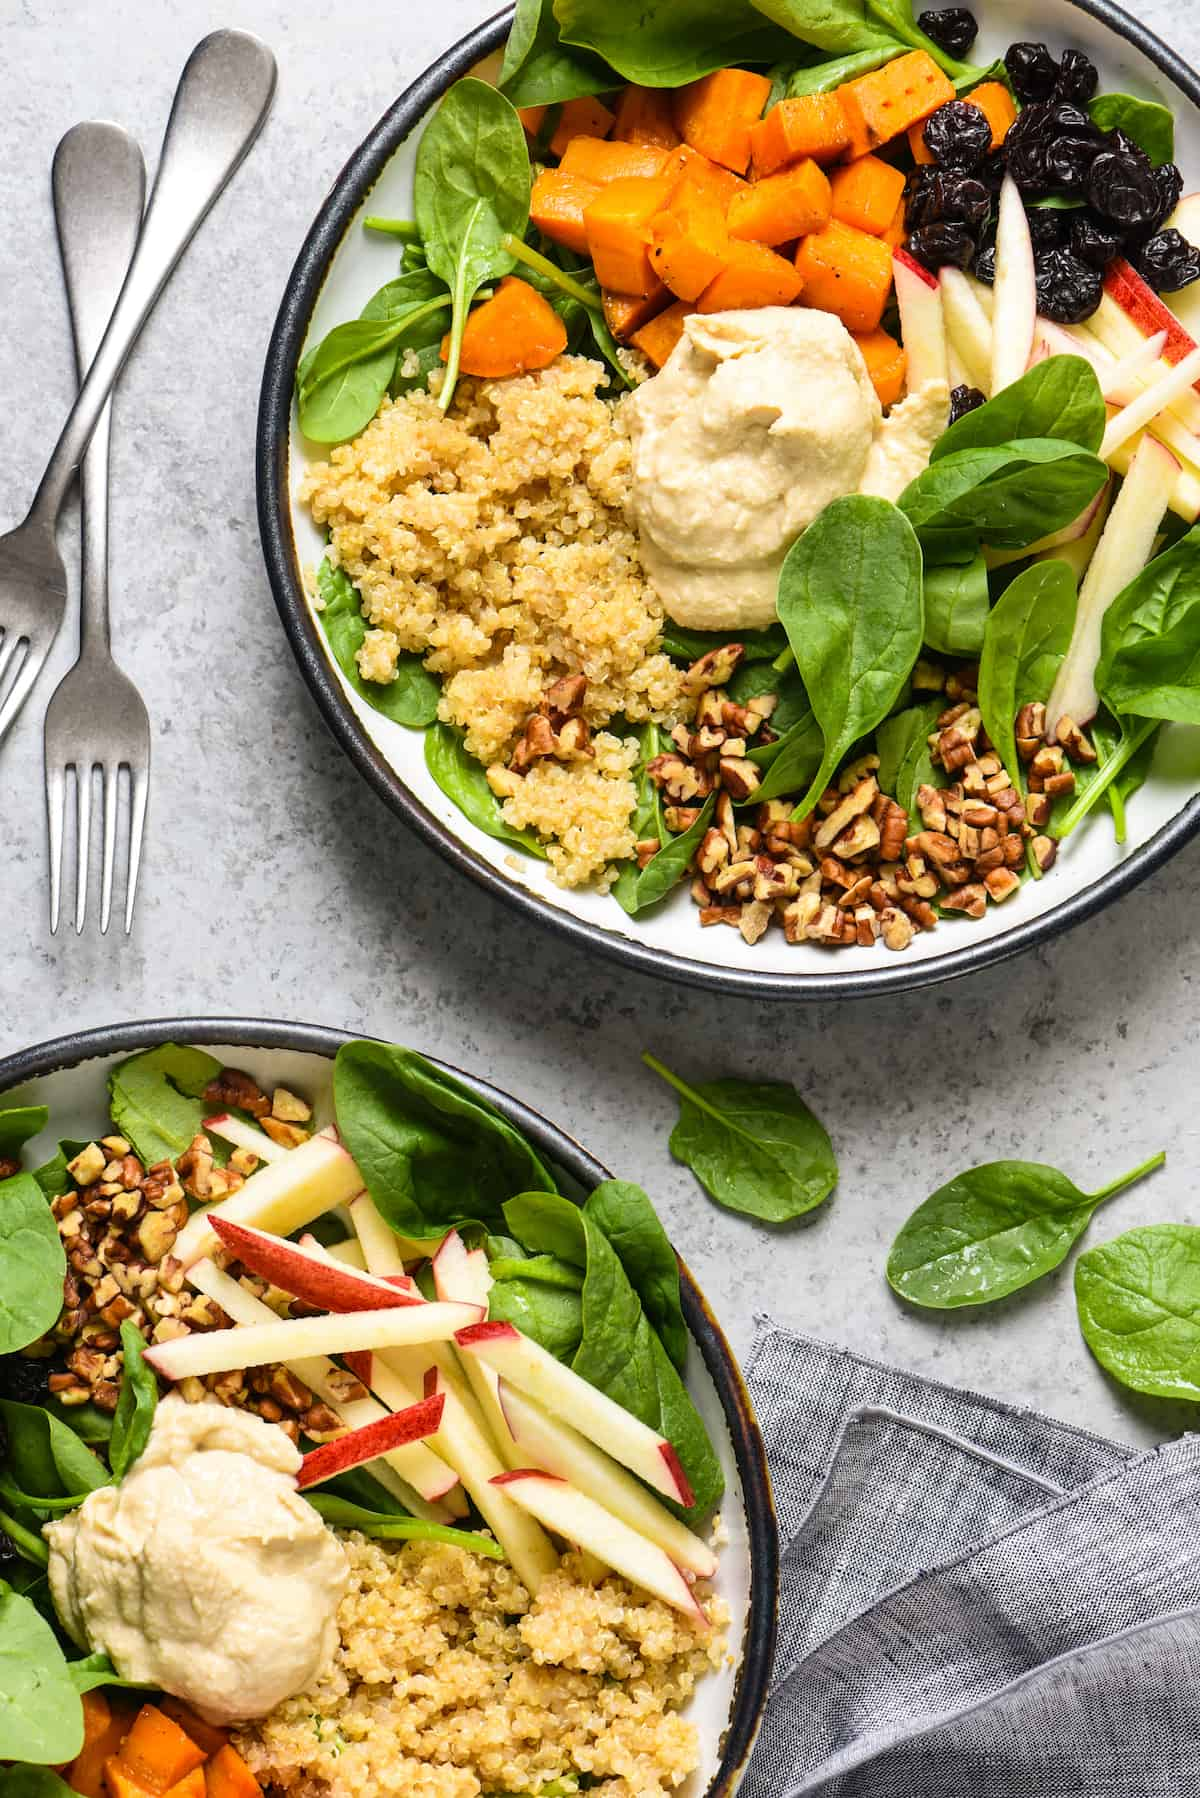 All of the ingredients for this Greens & Grains Power Lunch can be prepped at the start of the week, and you're all set for easy, healthful and delicious meals for days to come! Naturally gluten free, dairy free and vegan!